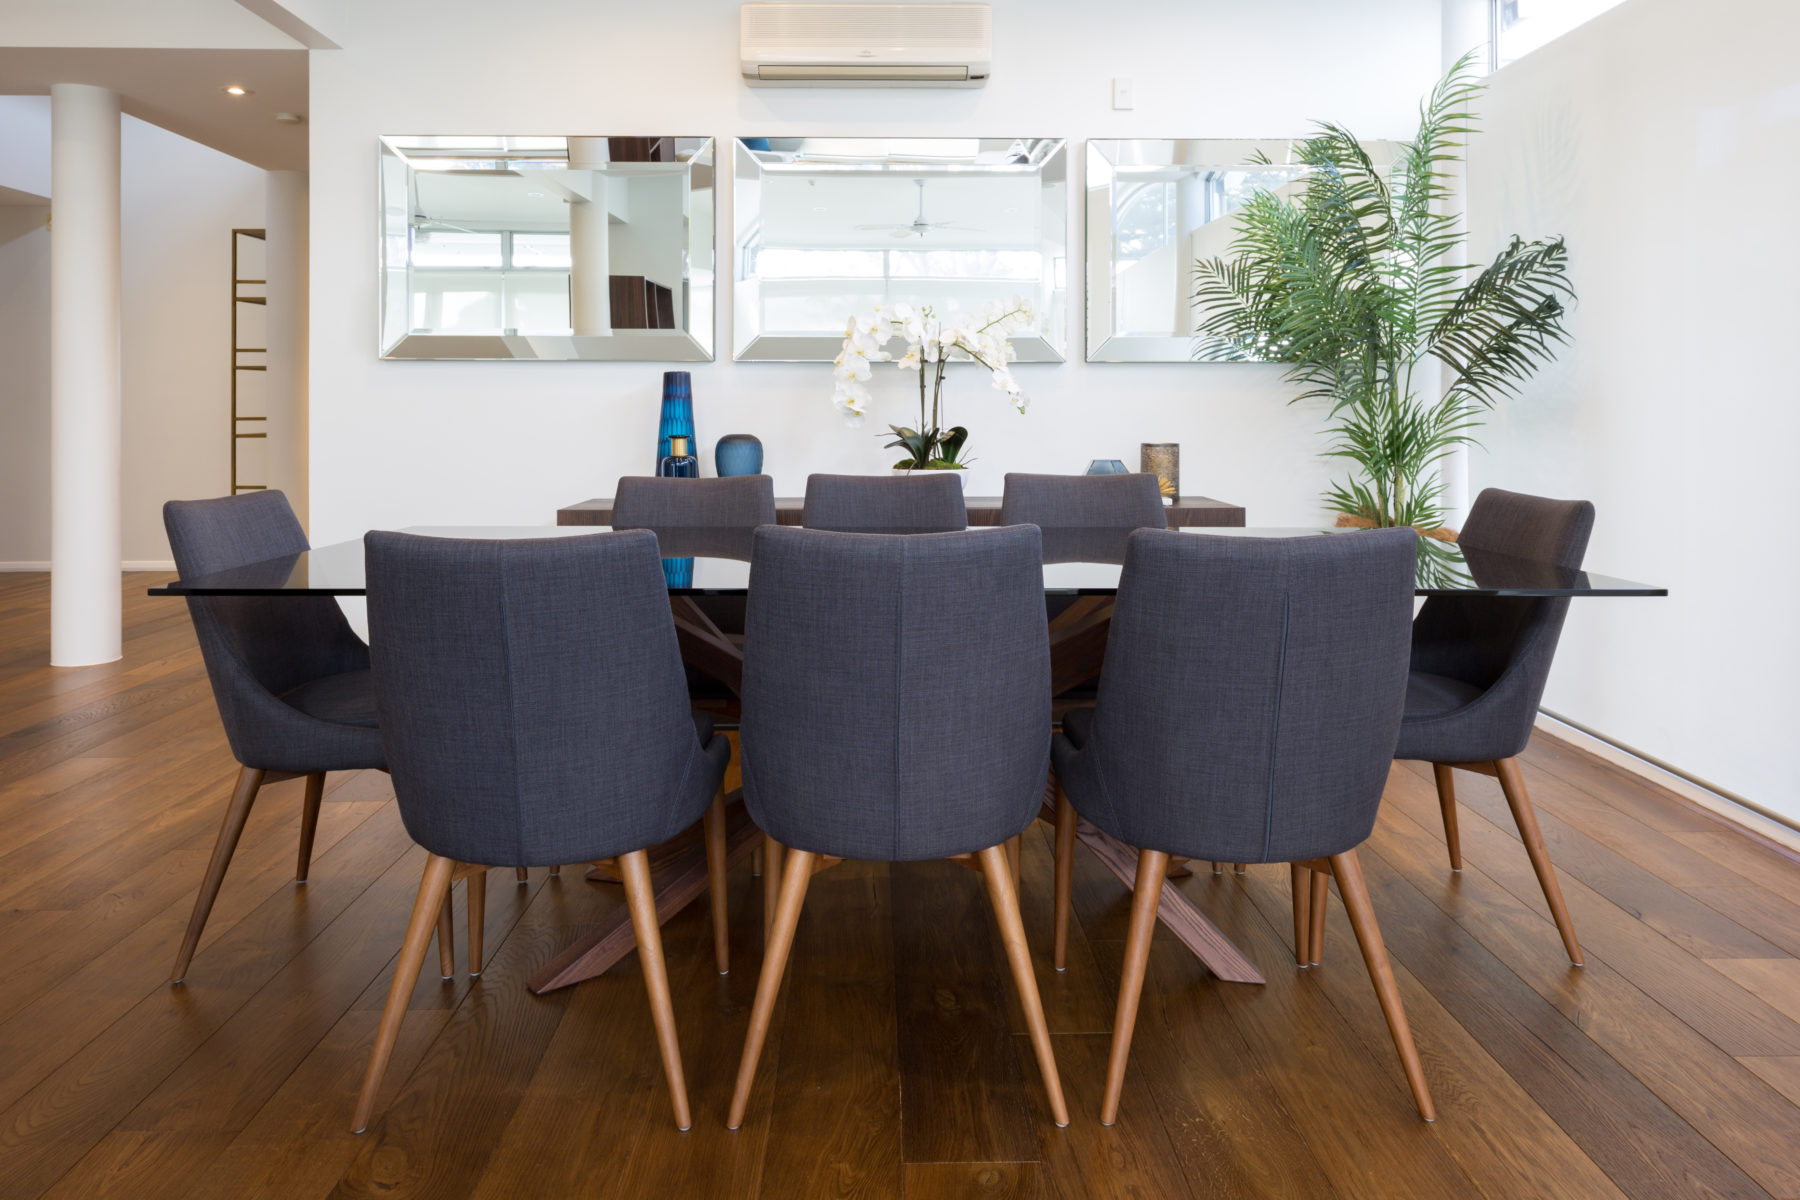 modern apartment dining room setting with wood floors and mirrors